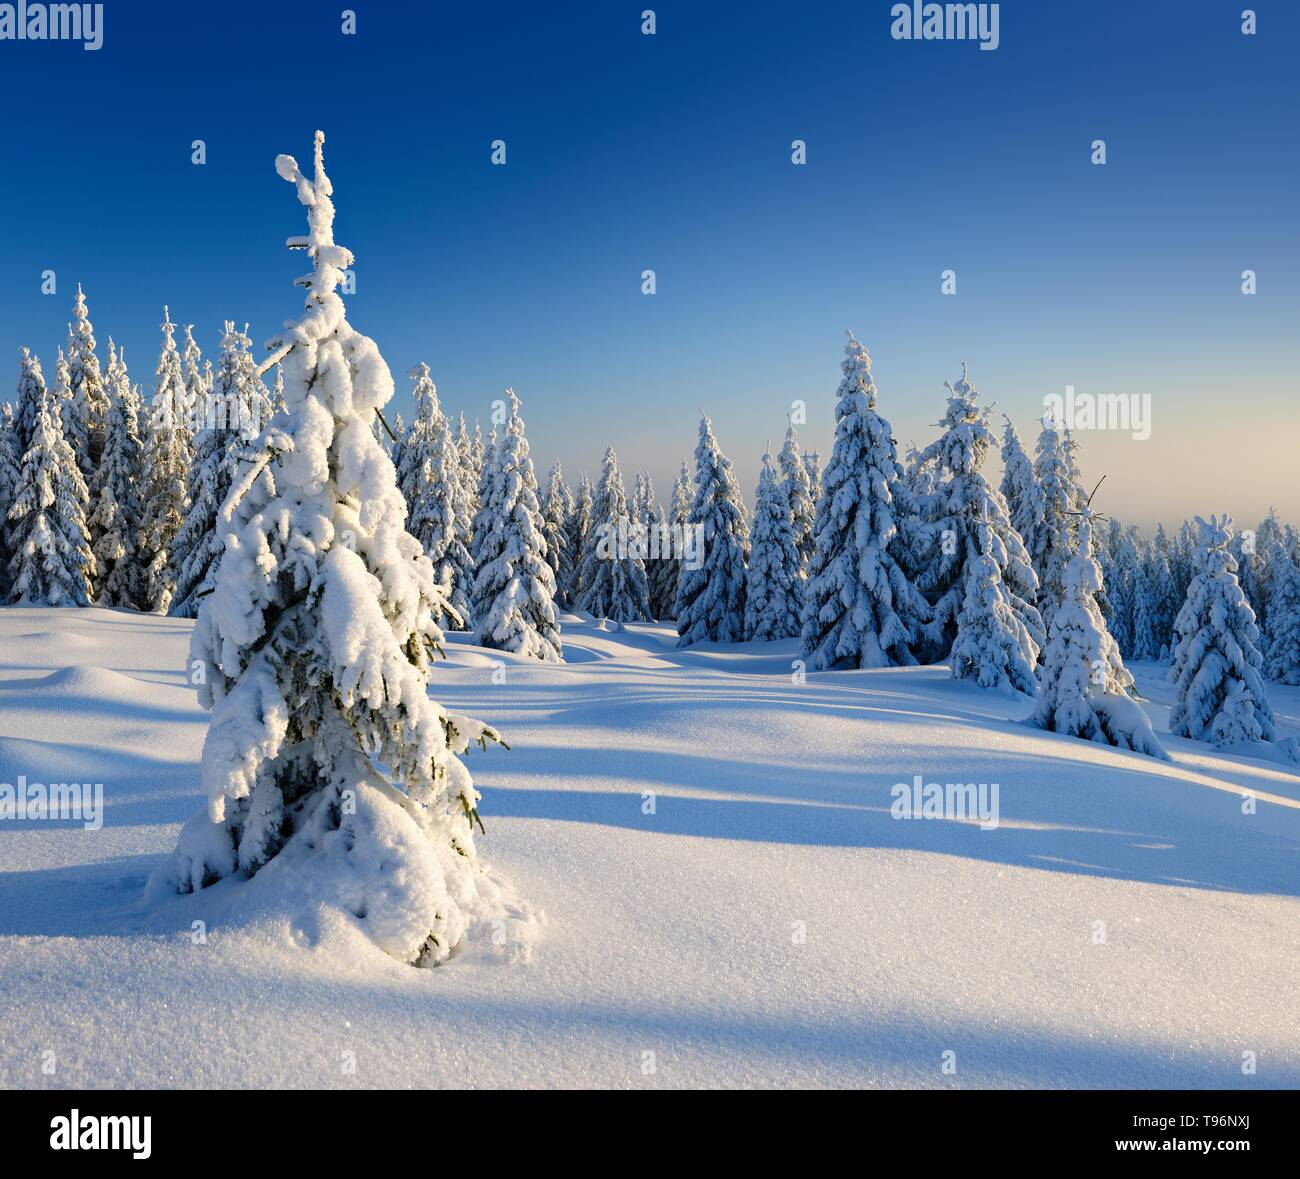 Snow-covered winter landscape, snow-covered spruces, Harz National Park, Saxony-Anhalt, Germany - Stock Image